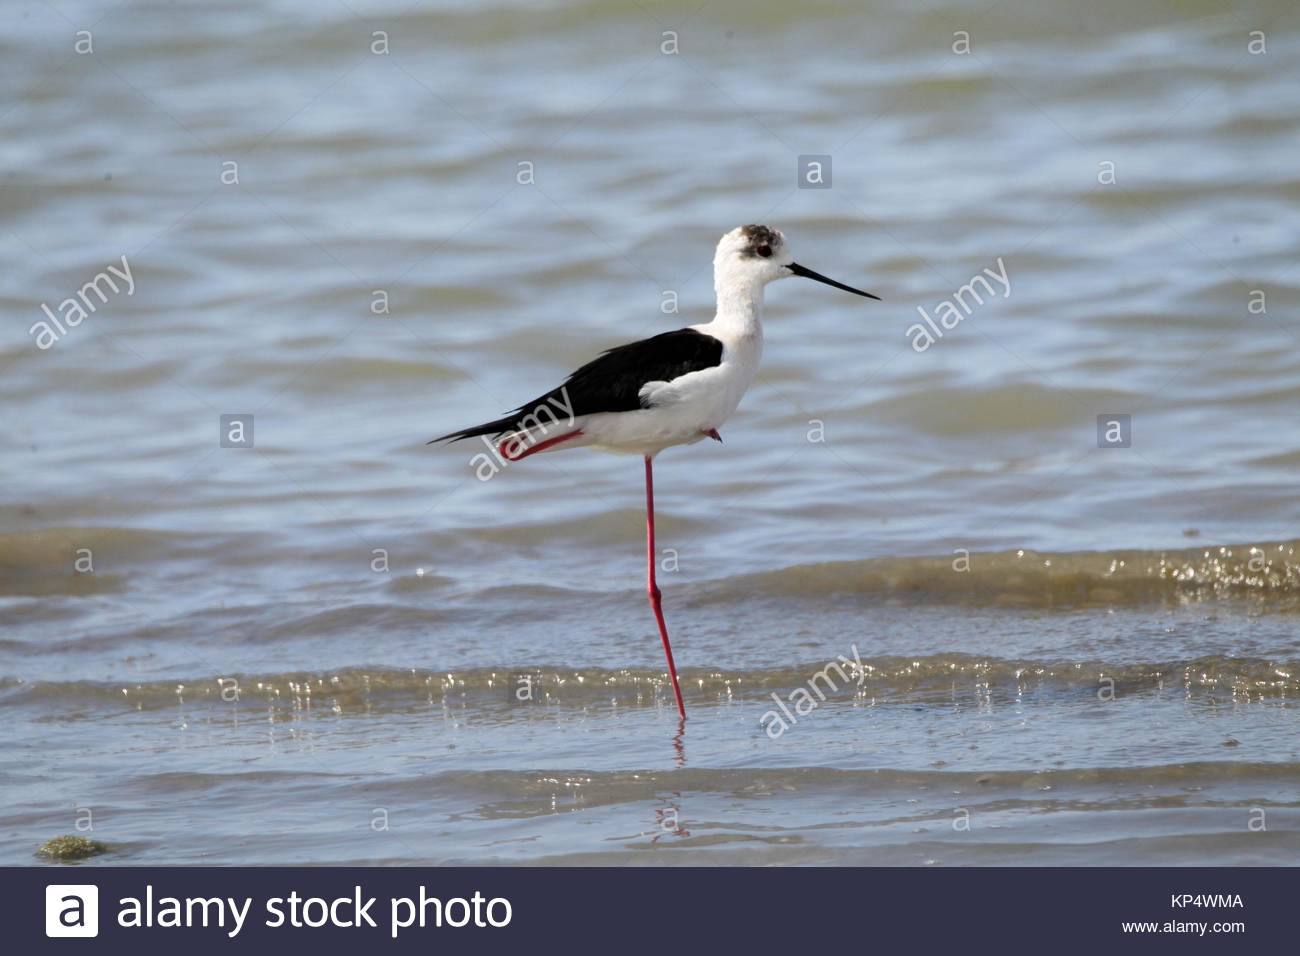 White-headed Stilt (Himantopus himantopus leucocephalus) wading in shallow water in the lagoon of Mesologgi Greece. Stock Photo